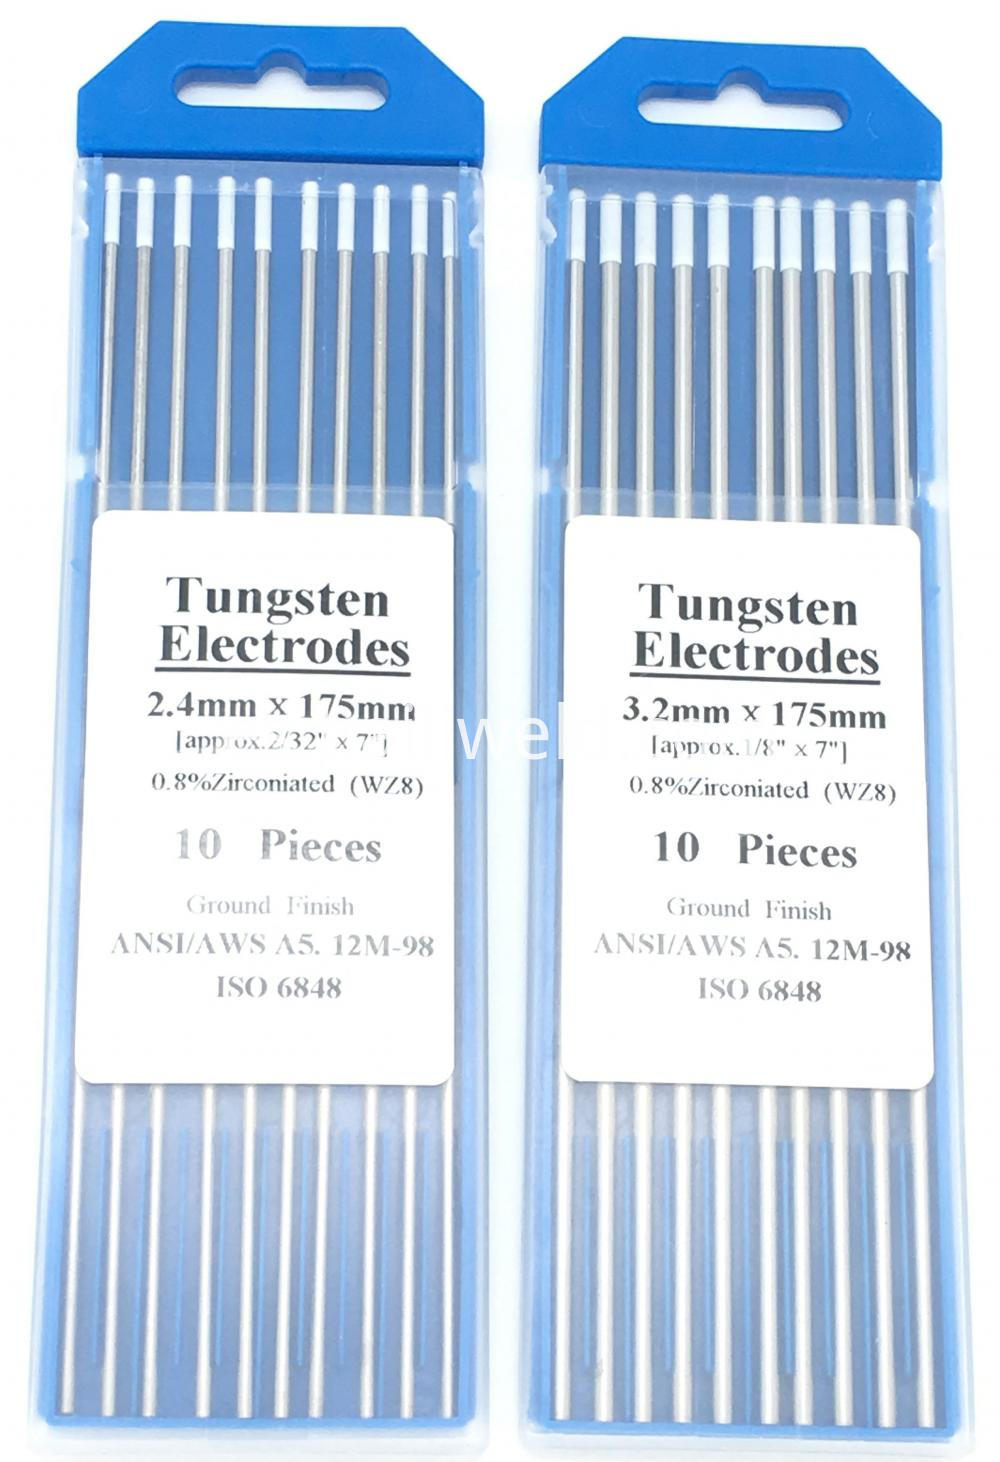 Zirconiated Tungsten Needle Wz8 3 2mm X 175mm